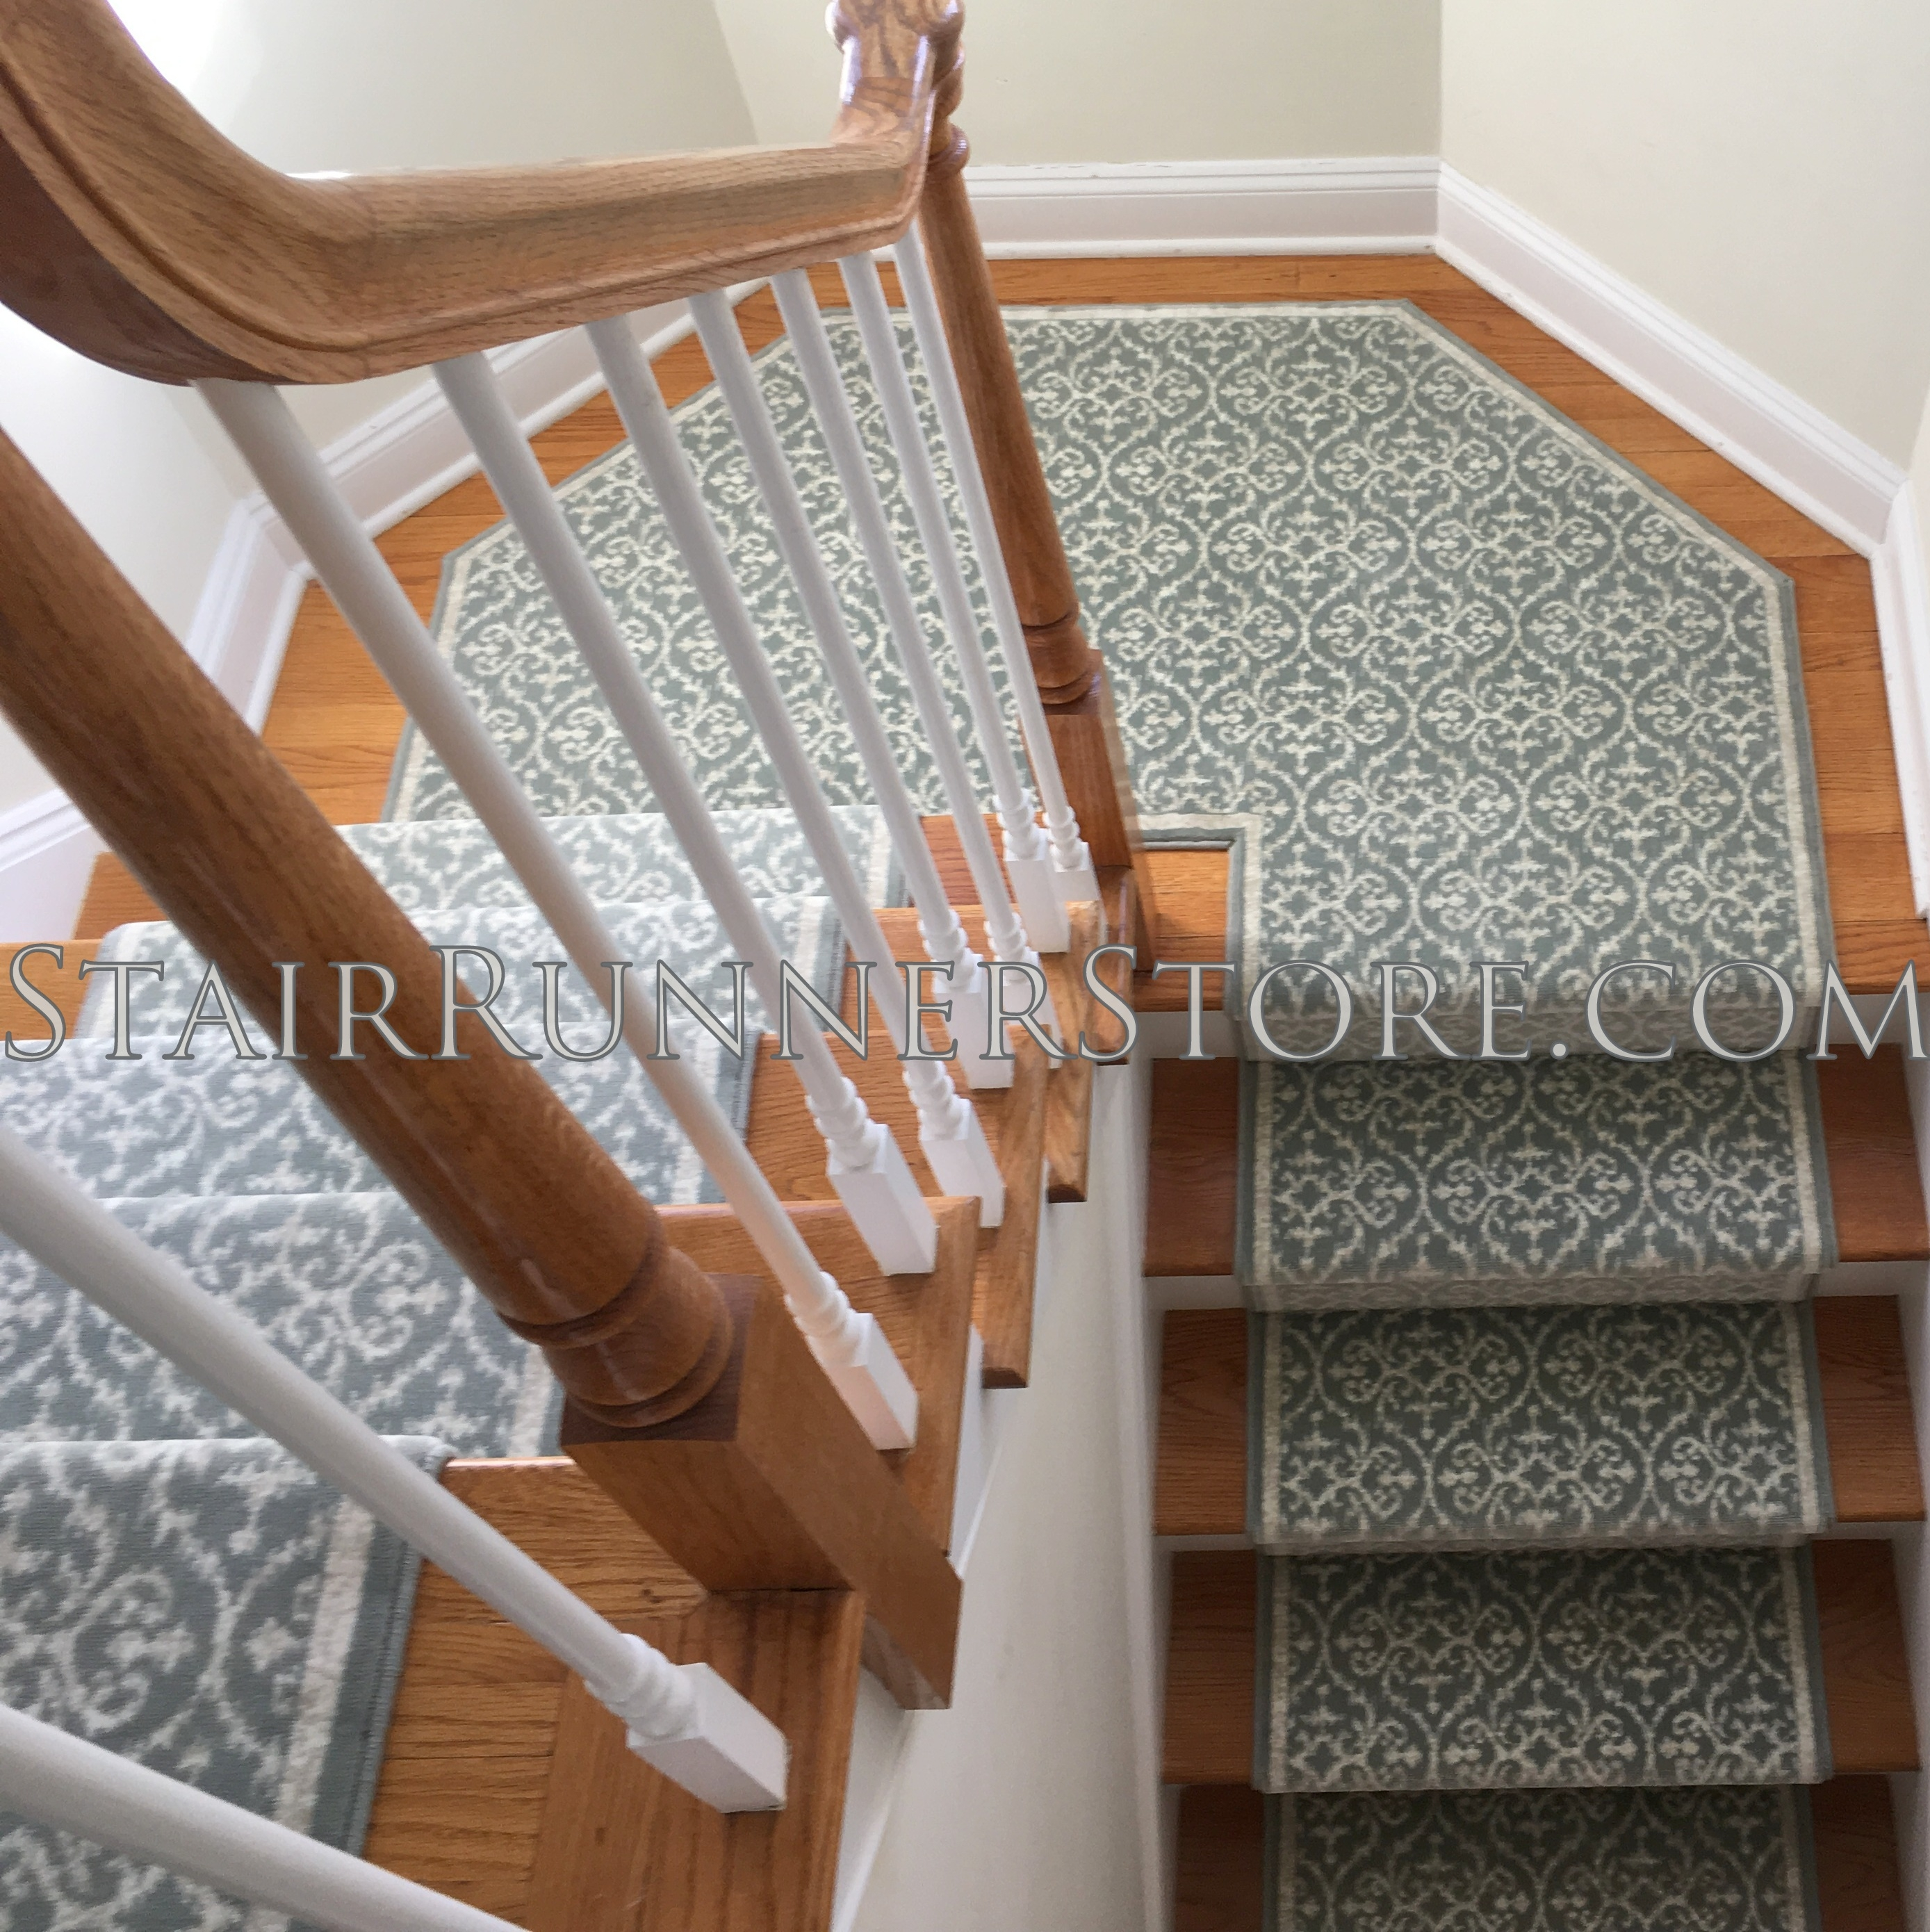 Angled Landings • Stair Runner Store Blog   Patterned Carpet For Stairs And Landing   Carpeting   Middle Open Concept   Diamond Uk Pattern   Striped Stair Carpet Entrance   Victorian Style